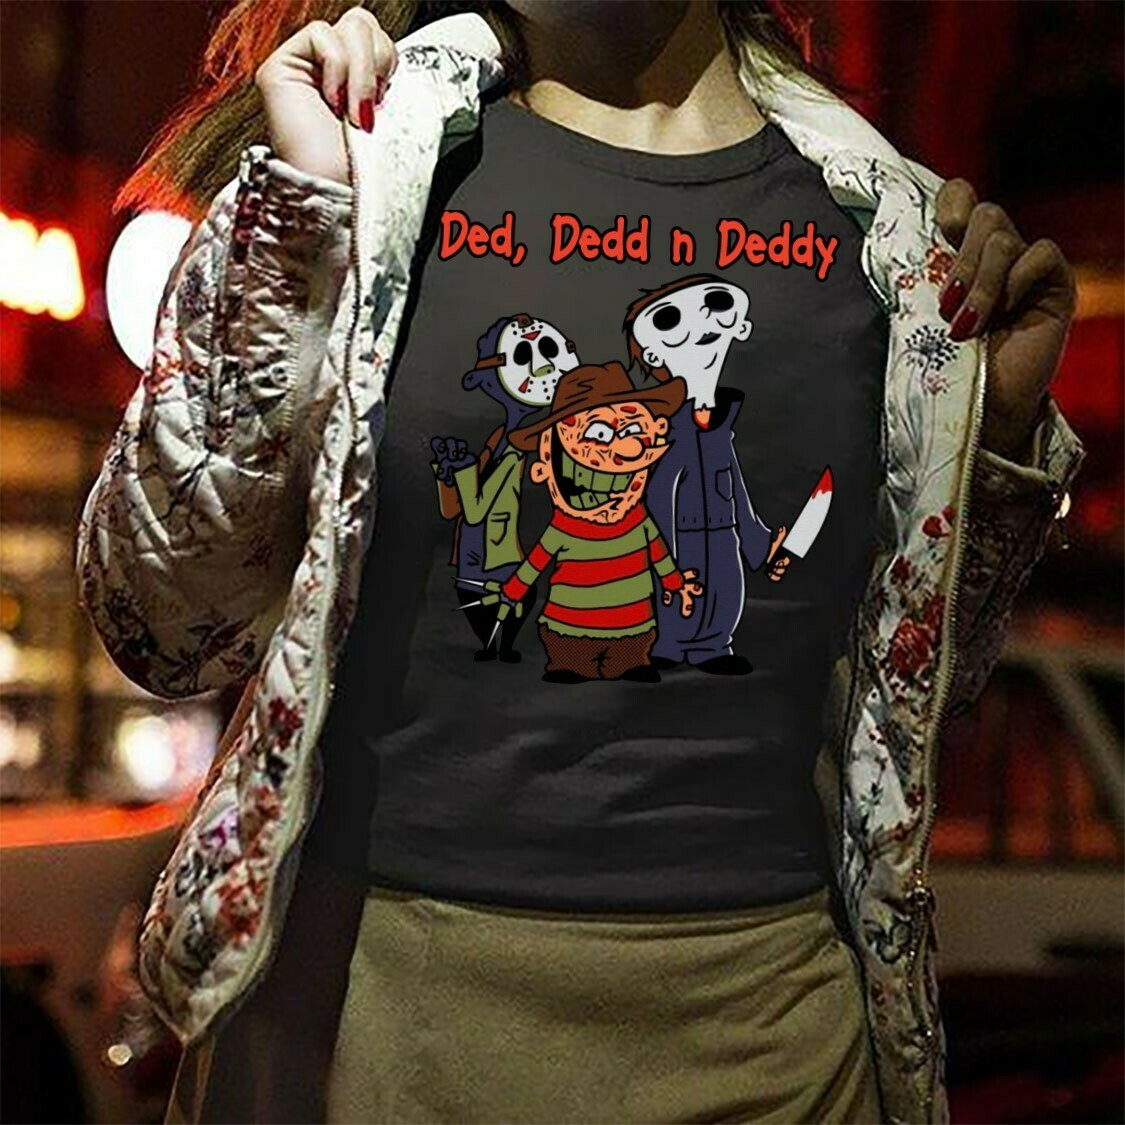 Ded, Dedd n Deddy Funny Horror Squad Friday The 13th Villains Halloween Movie Freddy Krueger Michael Myers Jason Voorhees Scary Tshirt Long Sleeve Sweatshirt Hoodie Jolly Family Gifts